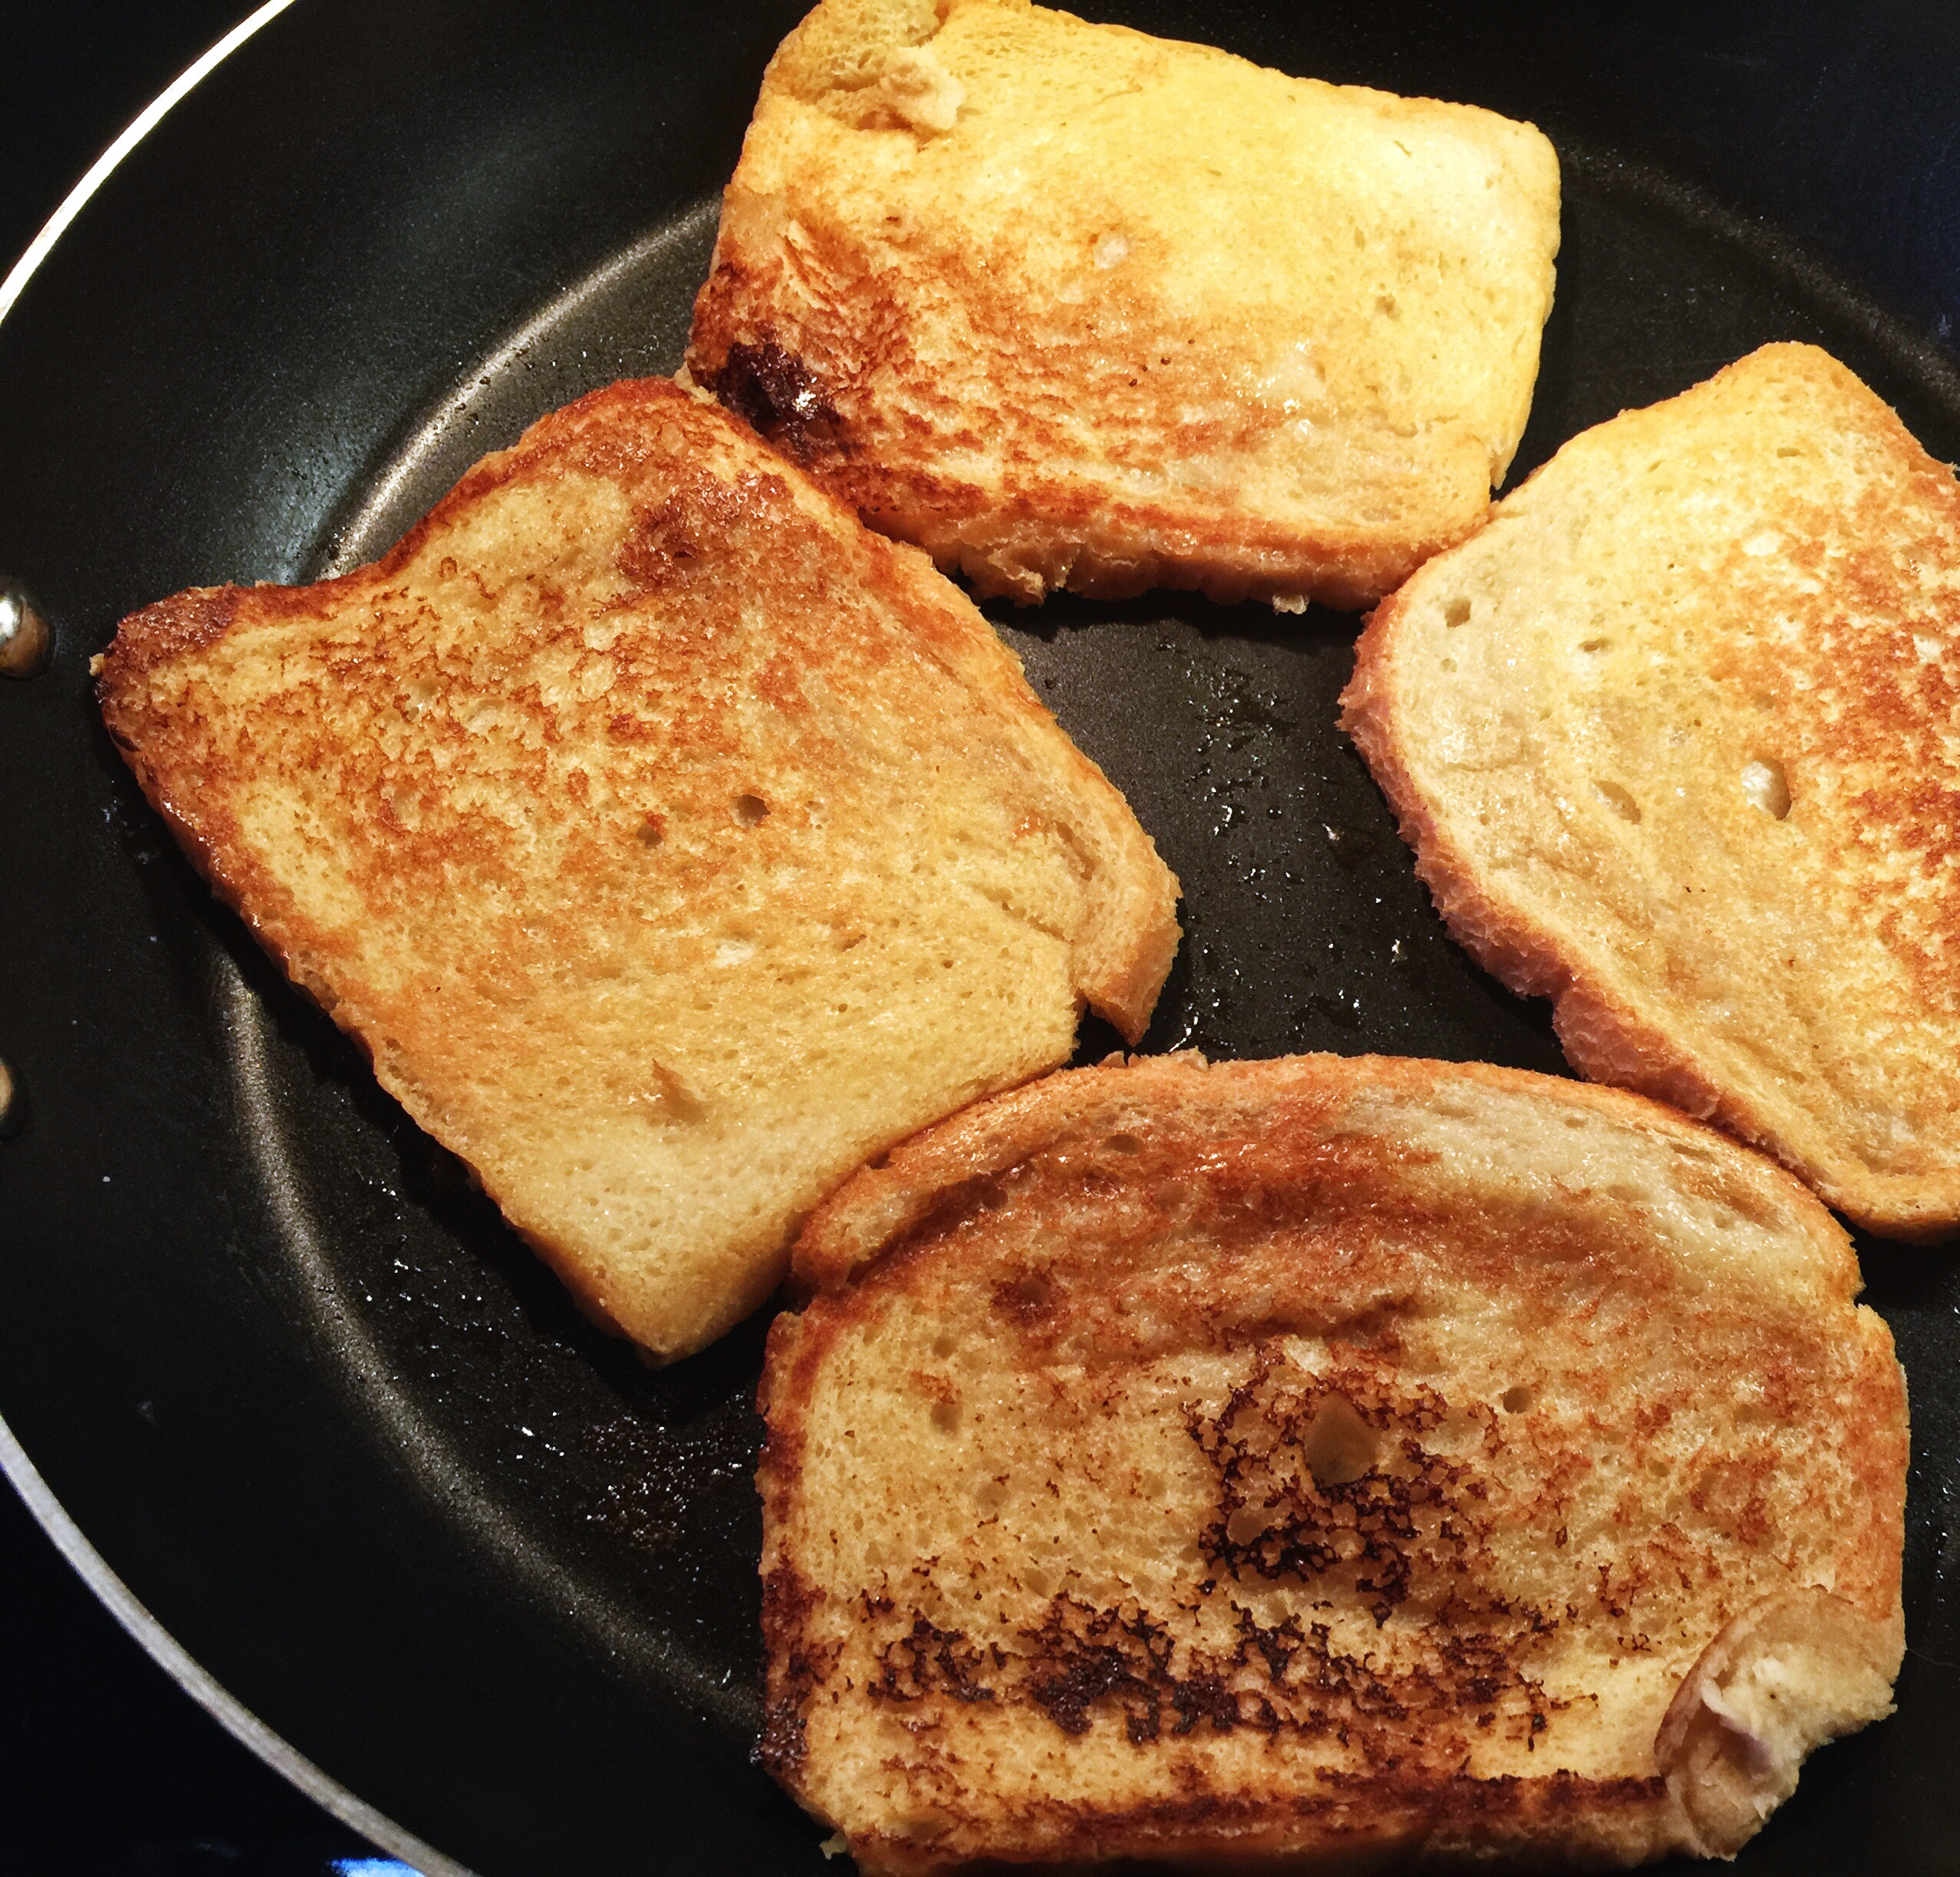 Cooking the toast